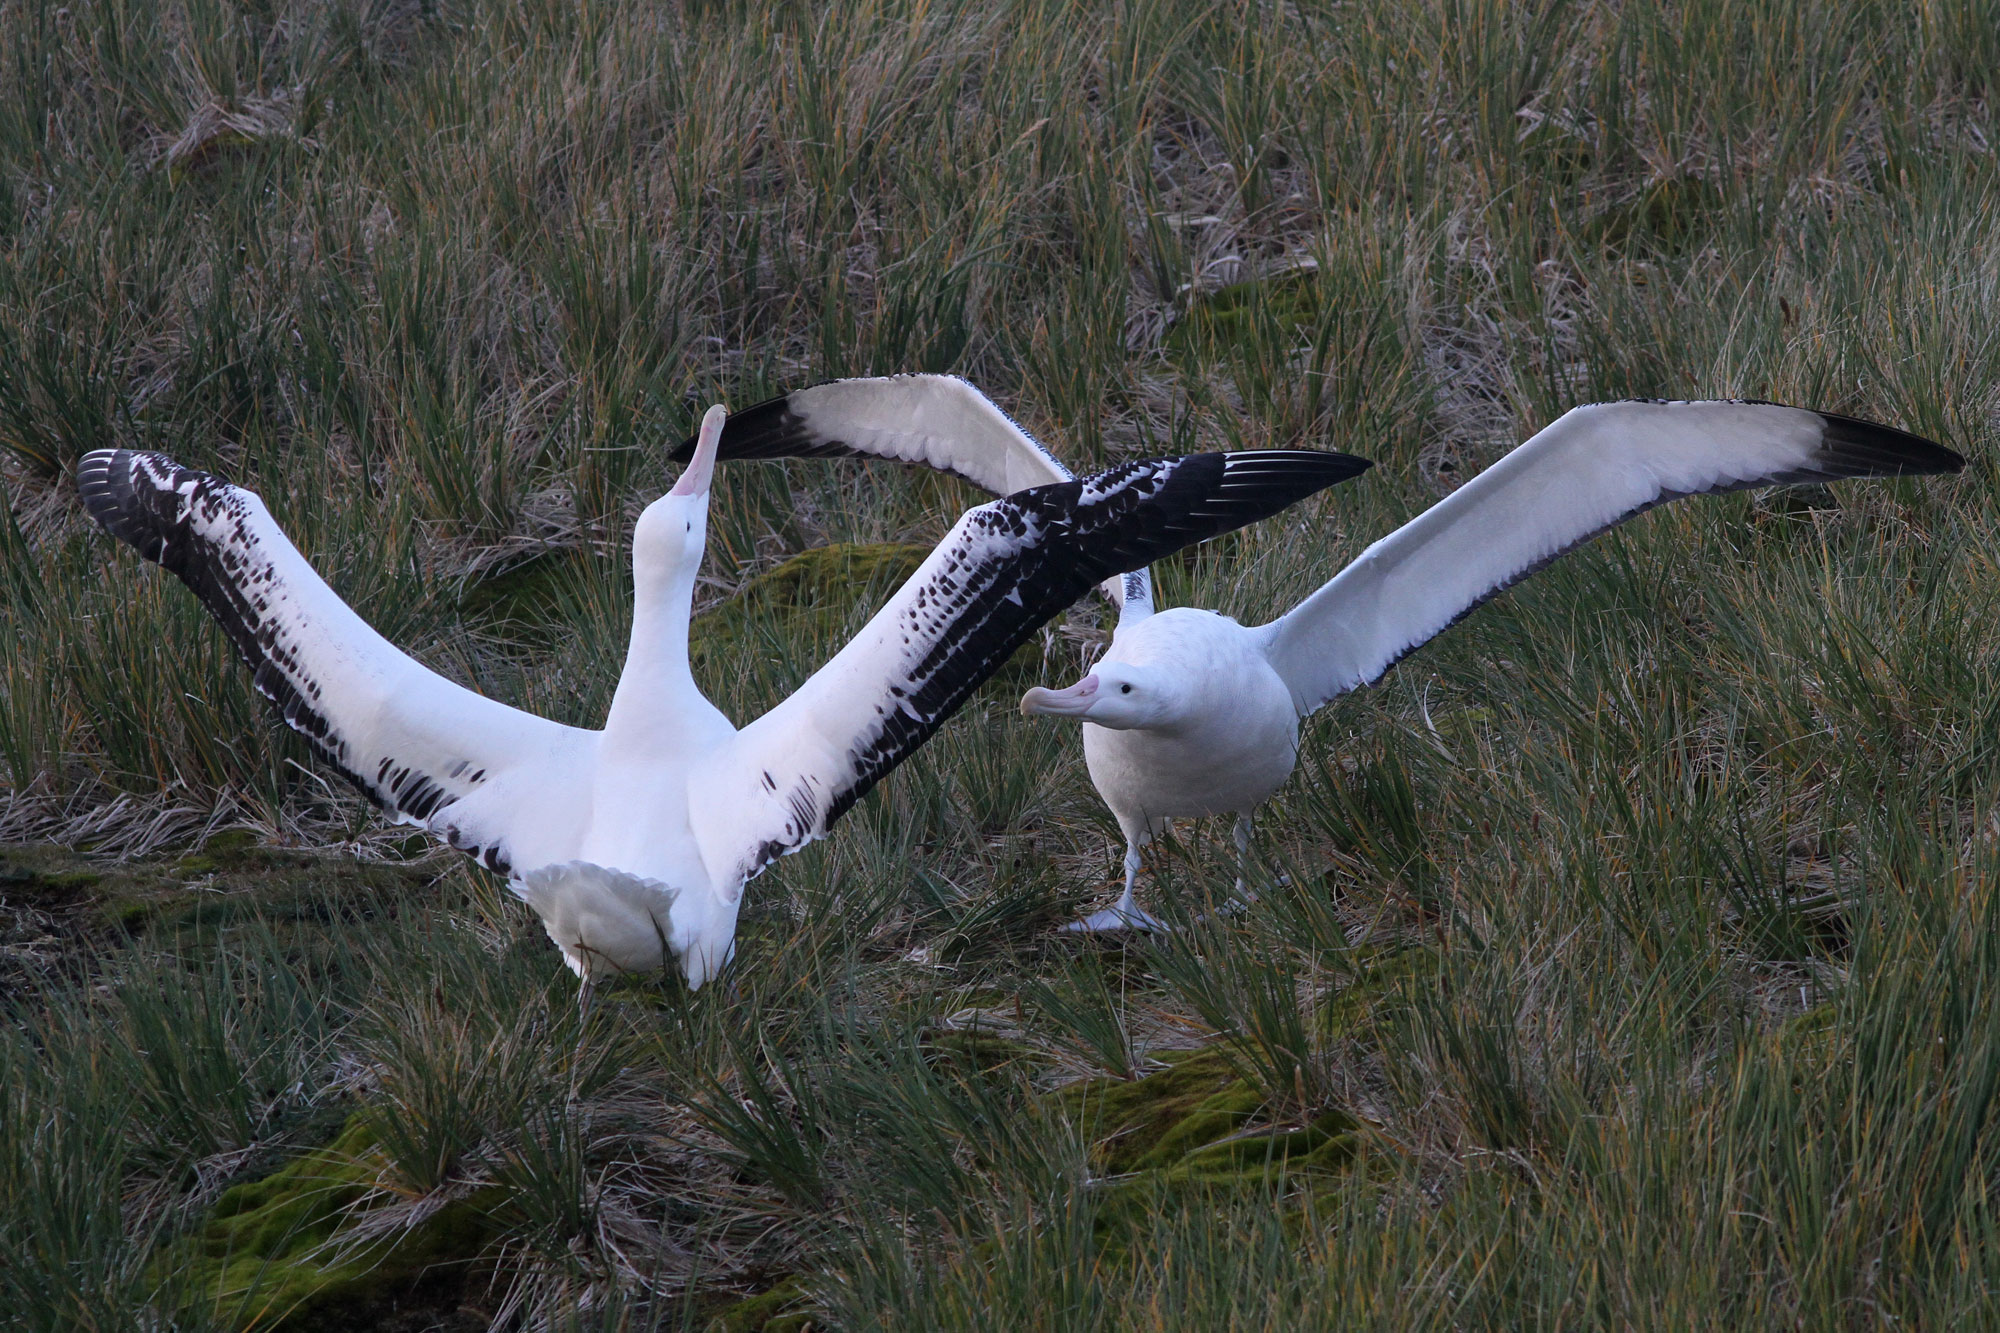 Wandering Albatross perform a courtship dance on the island of South Georgia, our first birding destination on the South Georgia to Cape Verde expedition. Photo: Noah Strycker